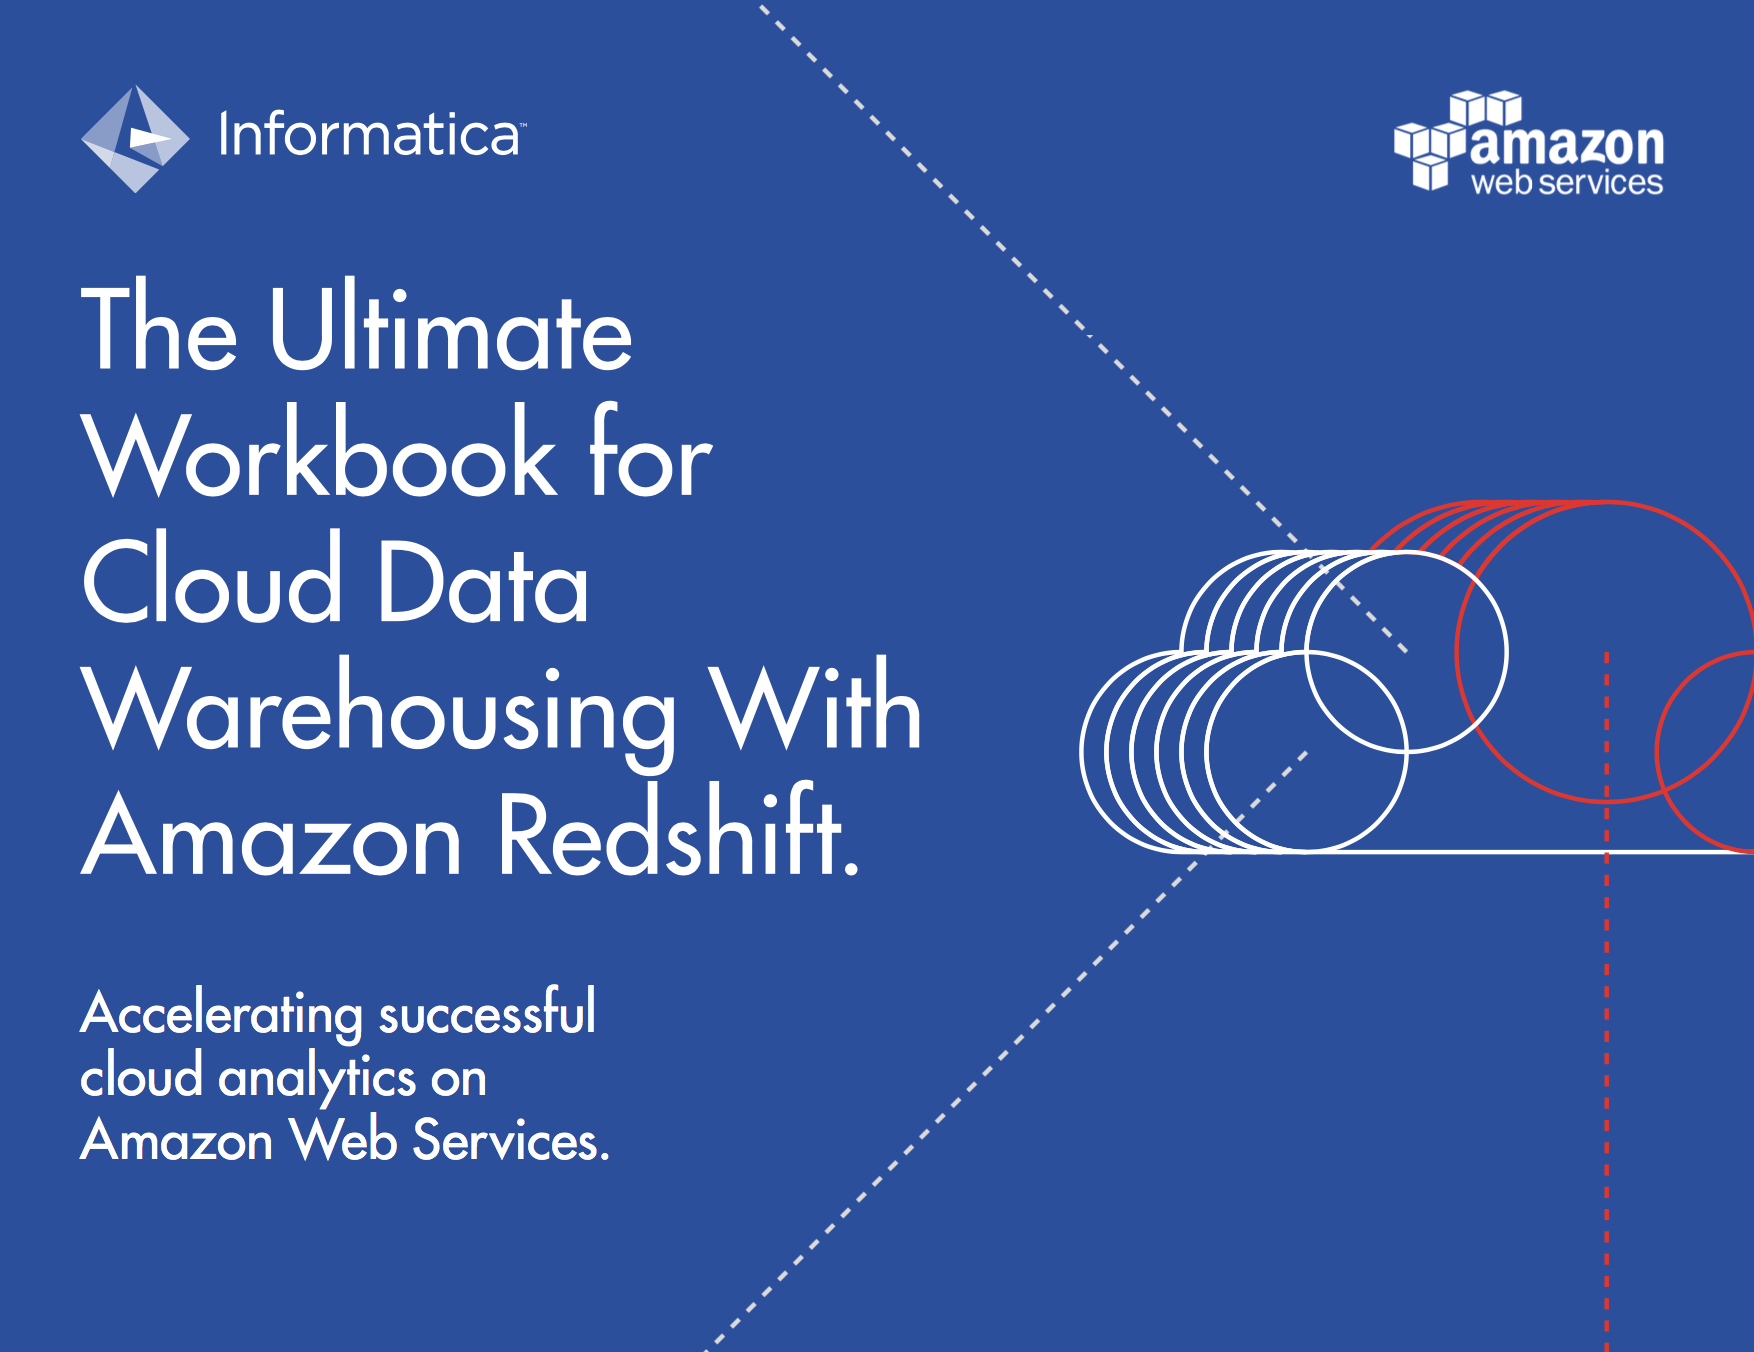 The Ultimate Workbook for Cloud Data Warehousing With Amazon Redshift